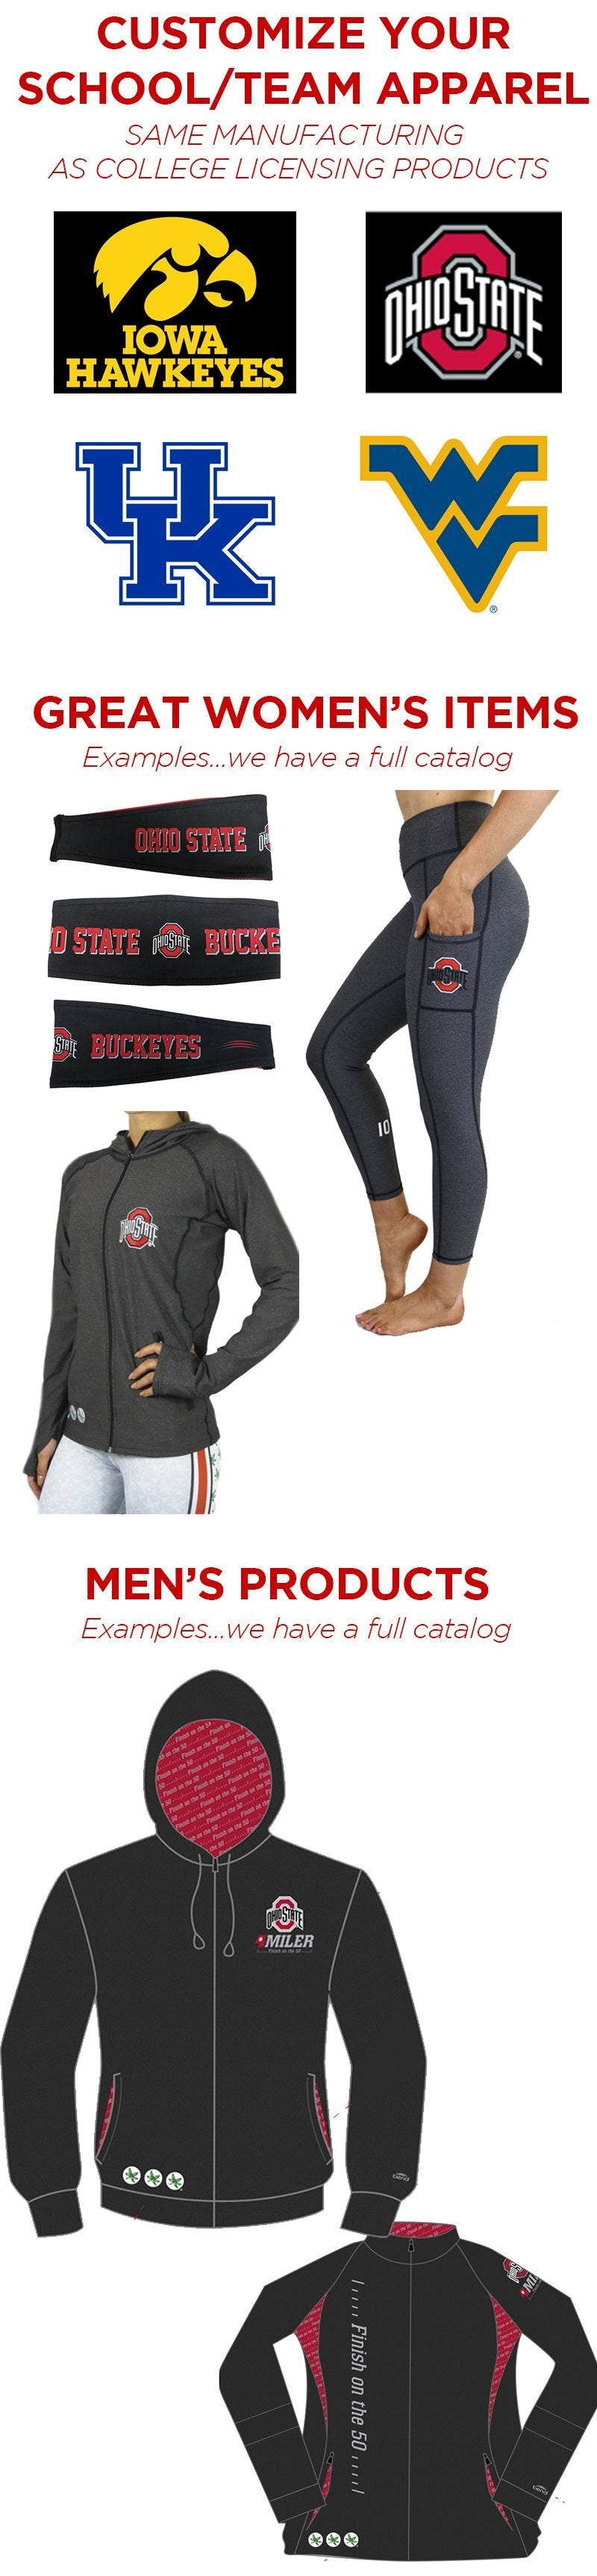 Rally Gear Custom Apparel for Schools and Teams